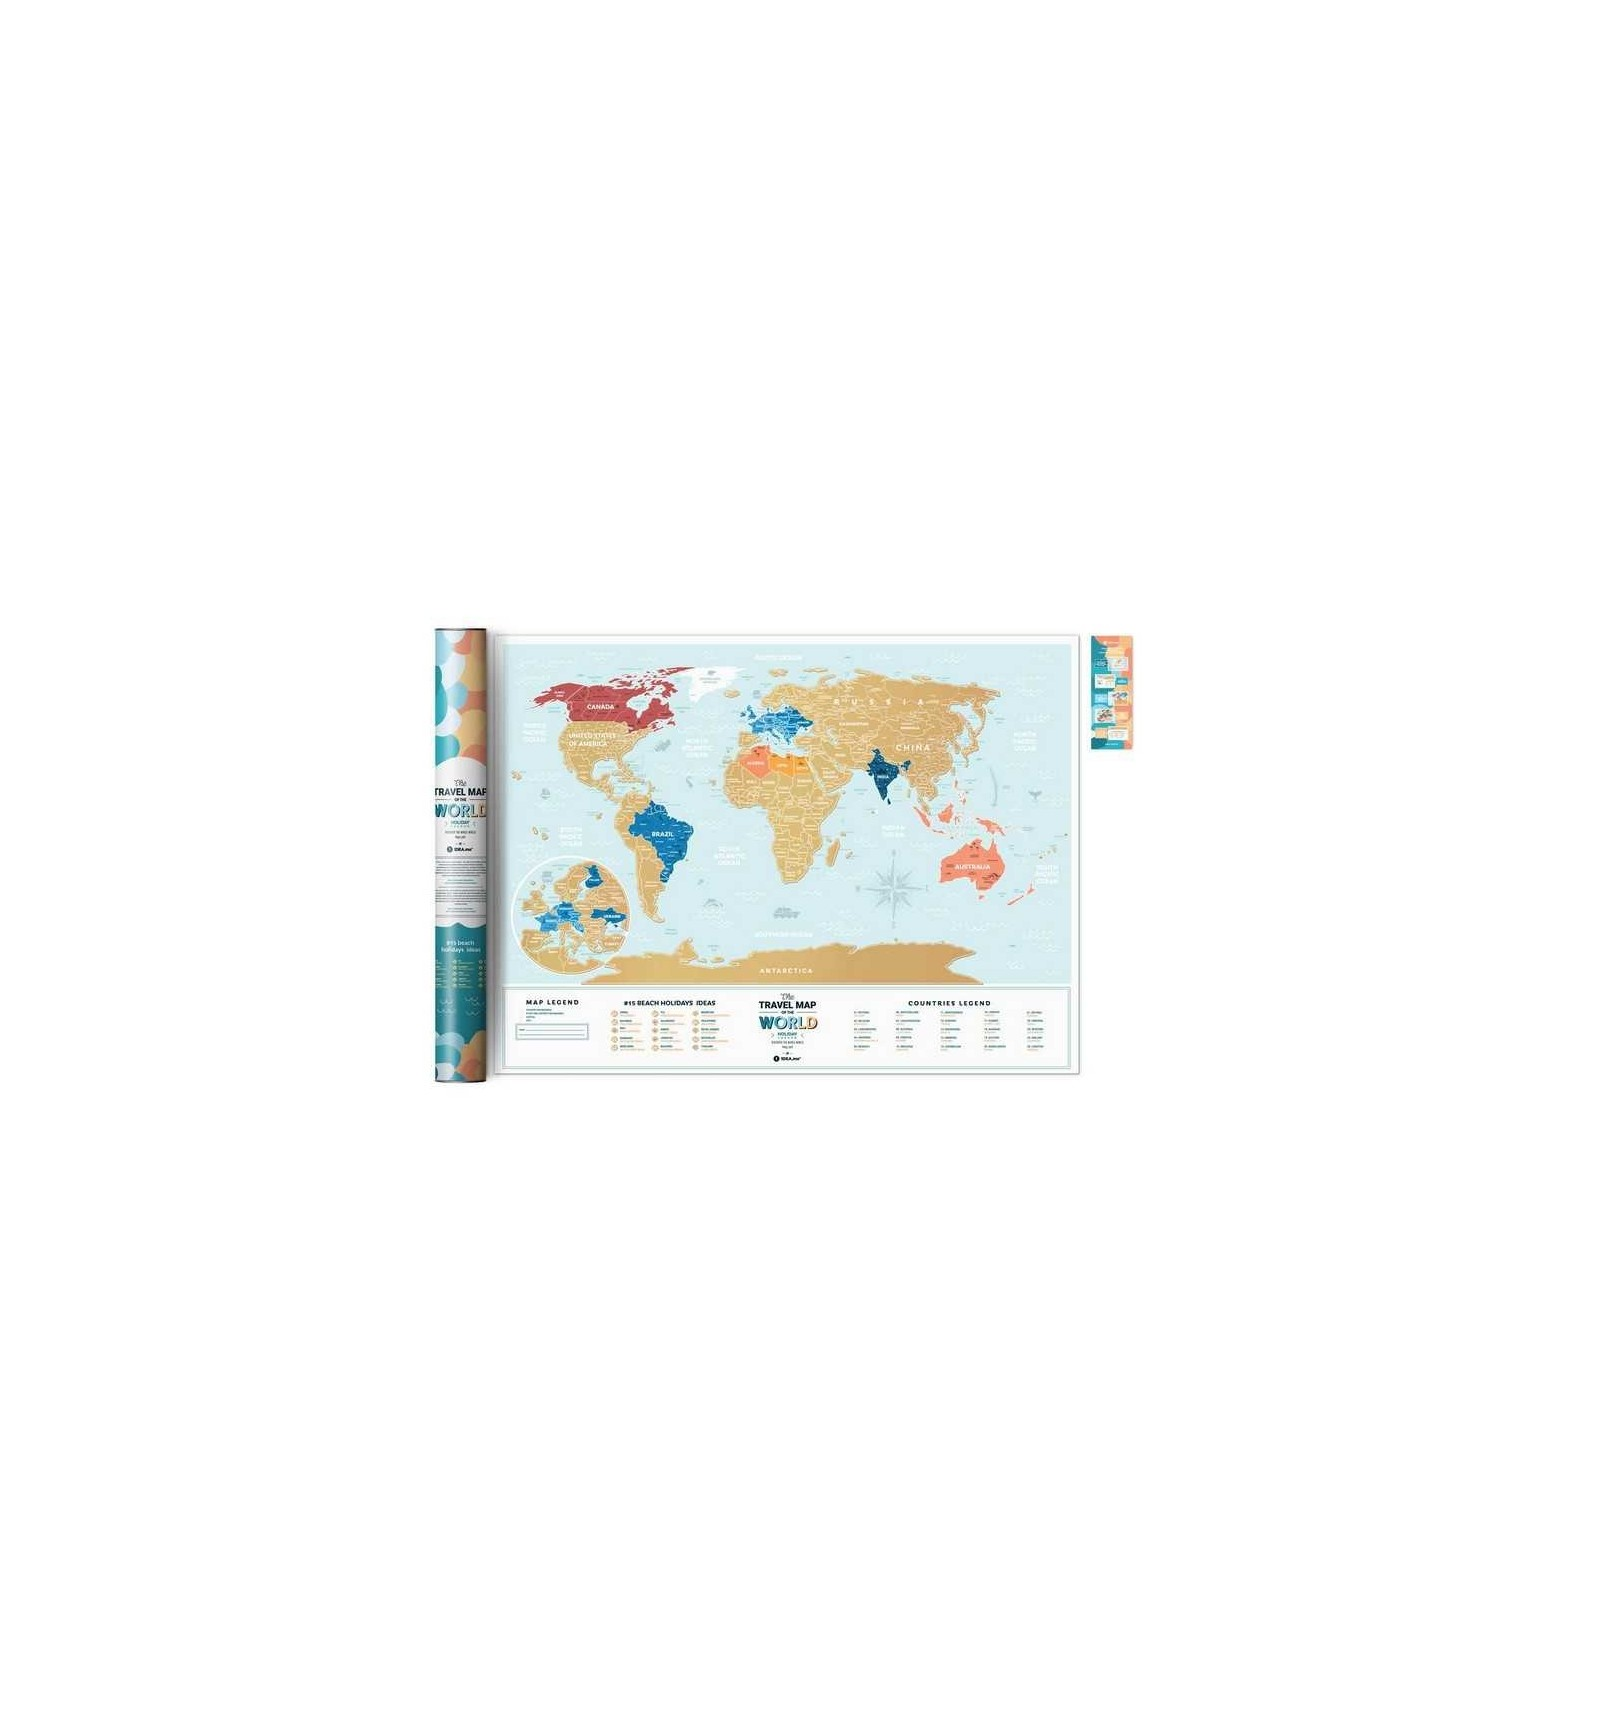 Scratch World Map 1dea.me Travel Map Holiday Lagoon World | on travel map decor, travel map clipart, travel map quotes, education ideas, travel map with pins, travel map of america, travel map gifts, travel map planning, travel map themes, bucket list ideas, travel map symbols, travel map software, home ideas, travel map design, travel map places, advertising ideas, travel map the world,